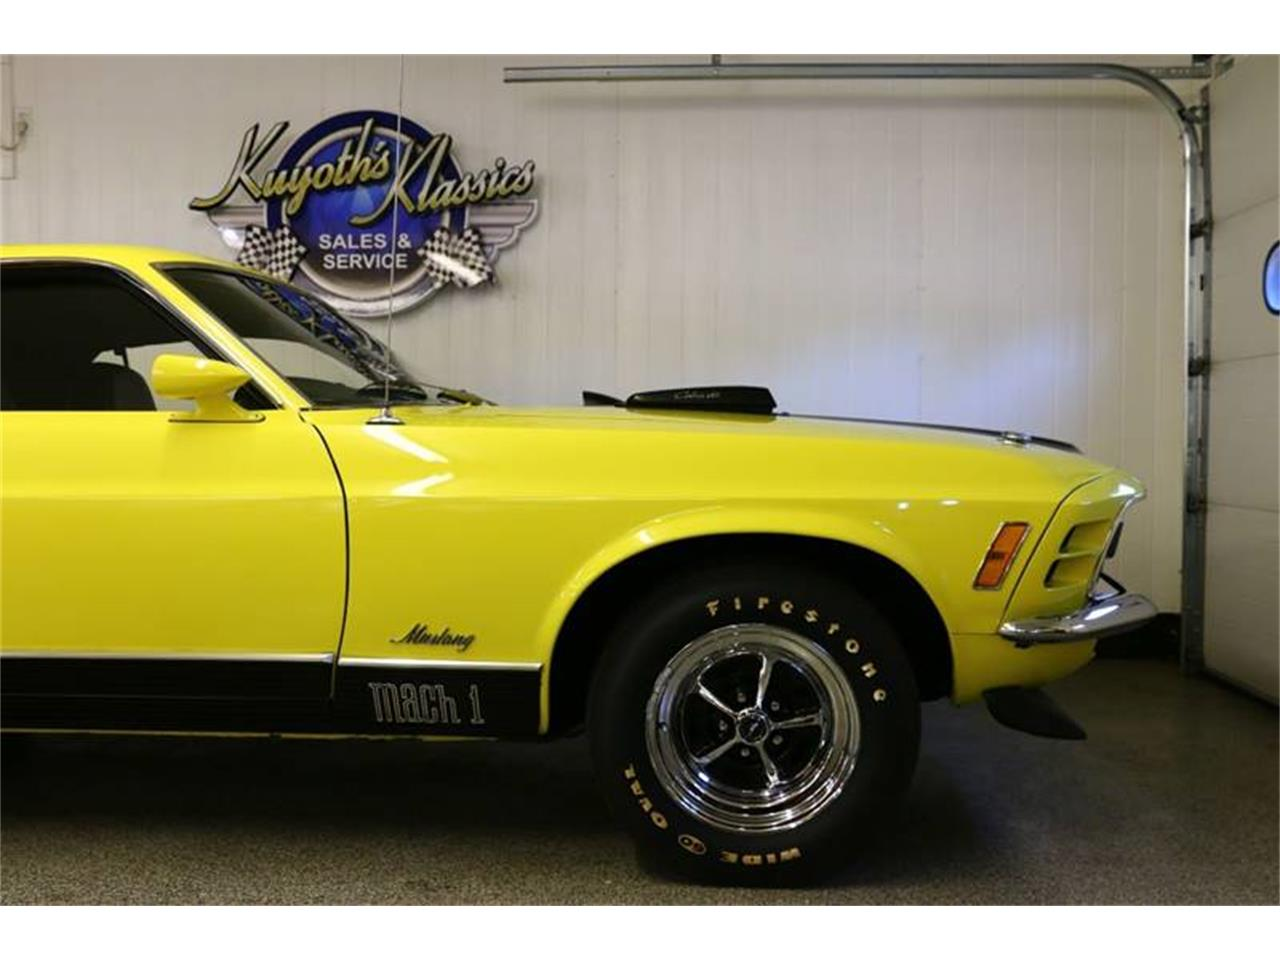 Large Picture of 1970 Ford Mustang located in Wisconsin - $49,995.00 Offered by Kuyoth's Klassics - NRLD